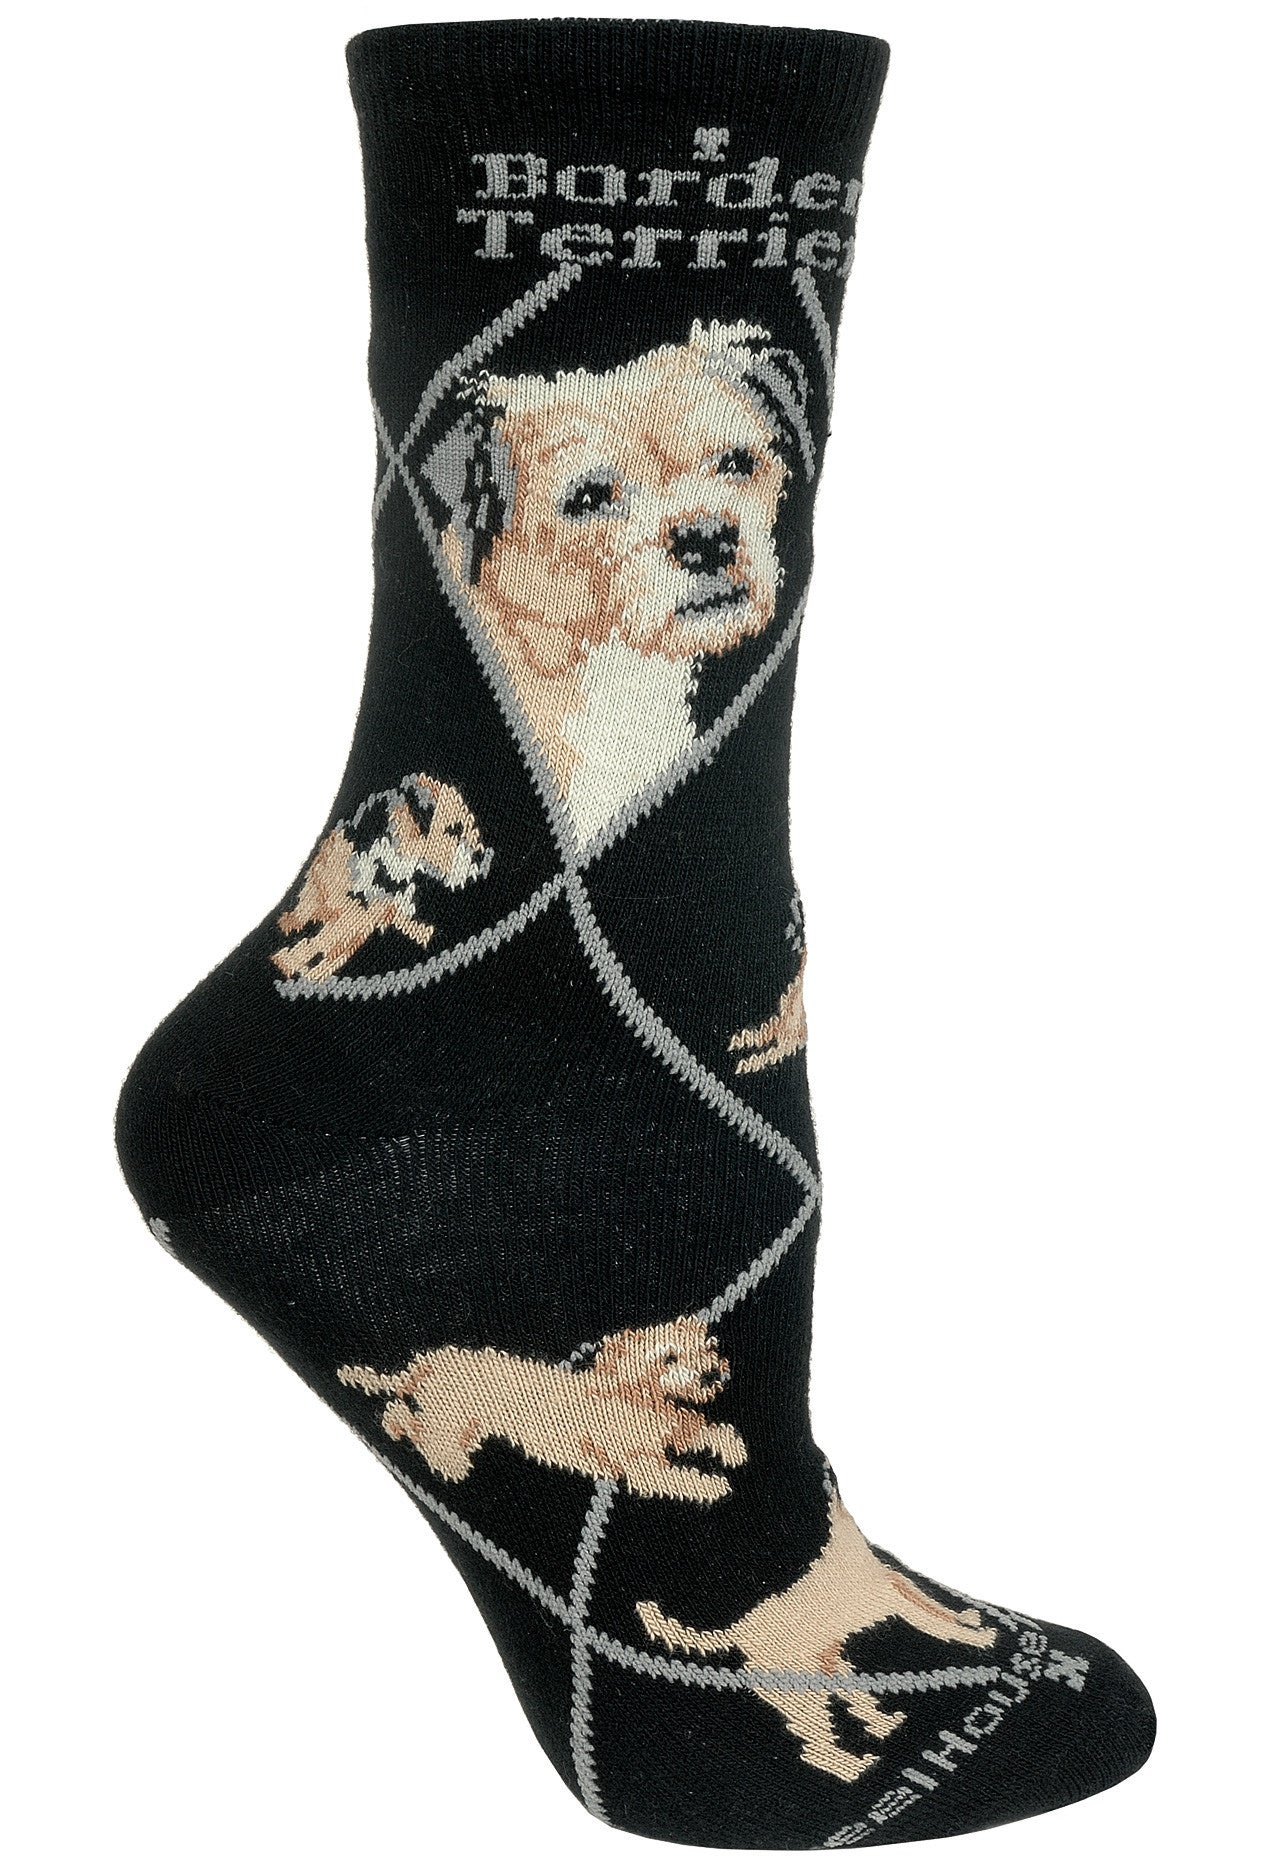 Border Terrier Crew Socks on Black